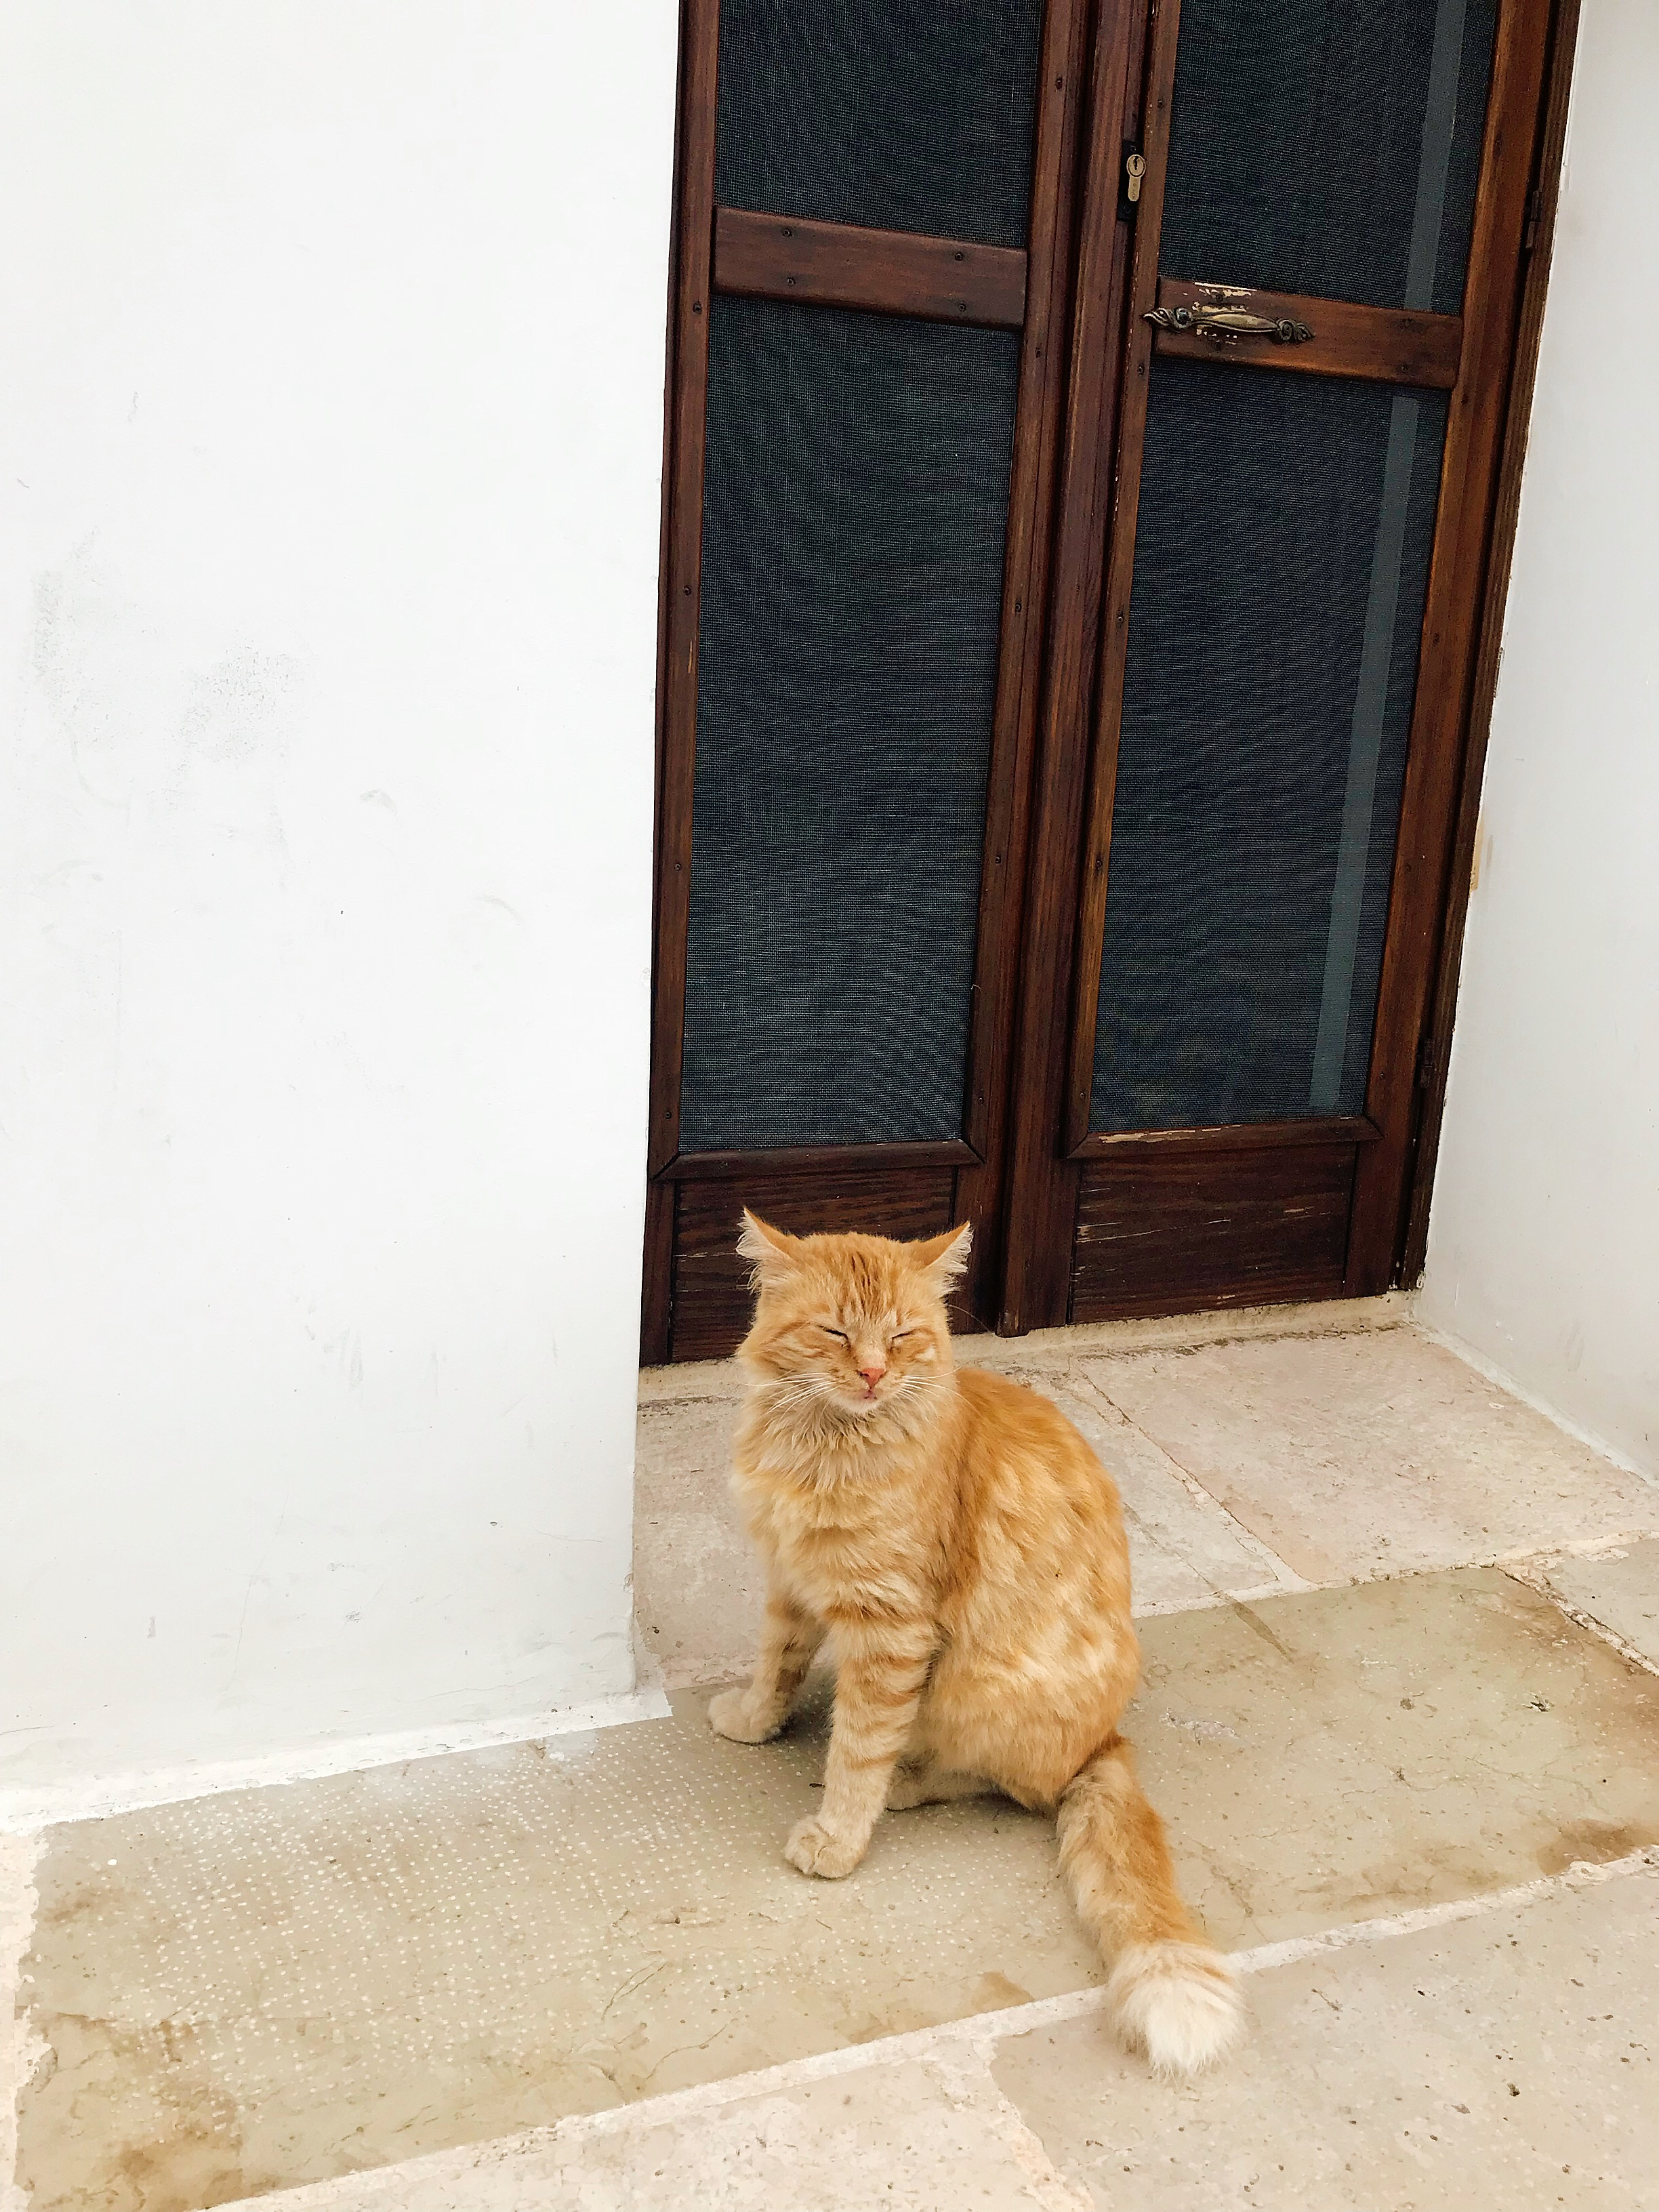 Alberobello- Clearly he is not a fan of having his picture taken